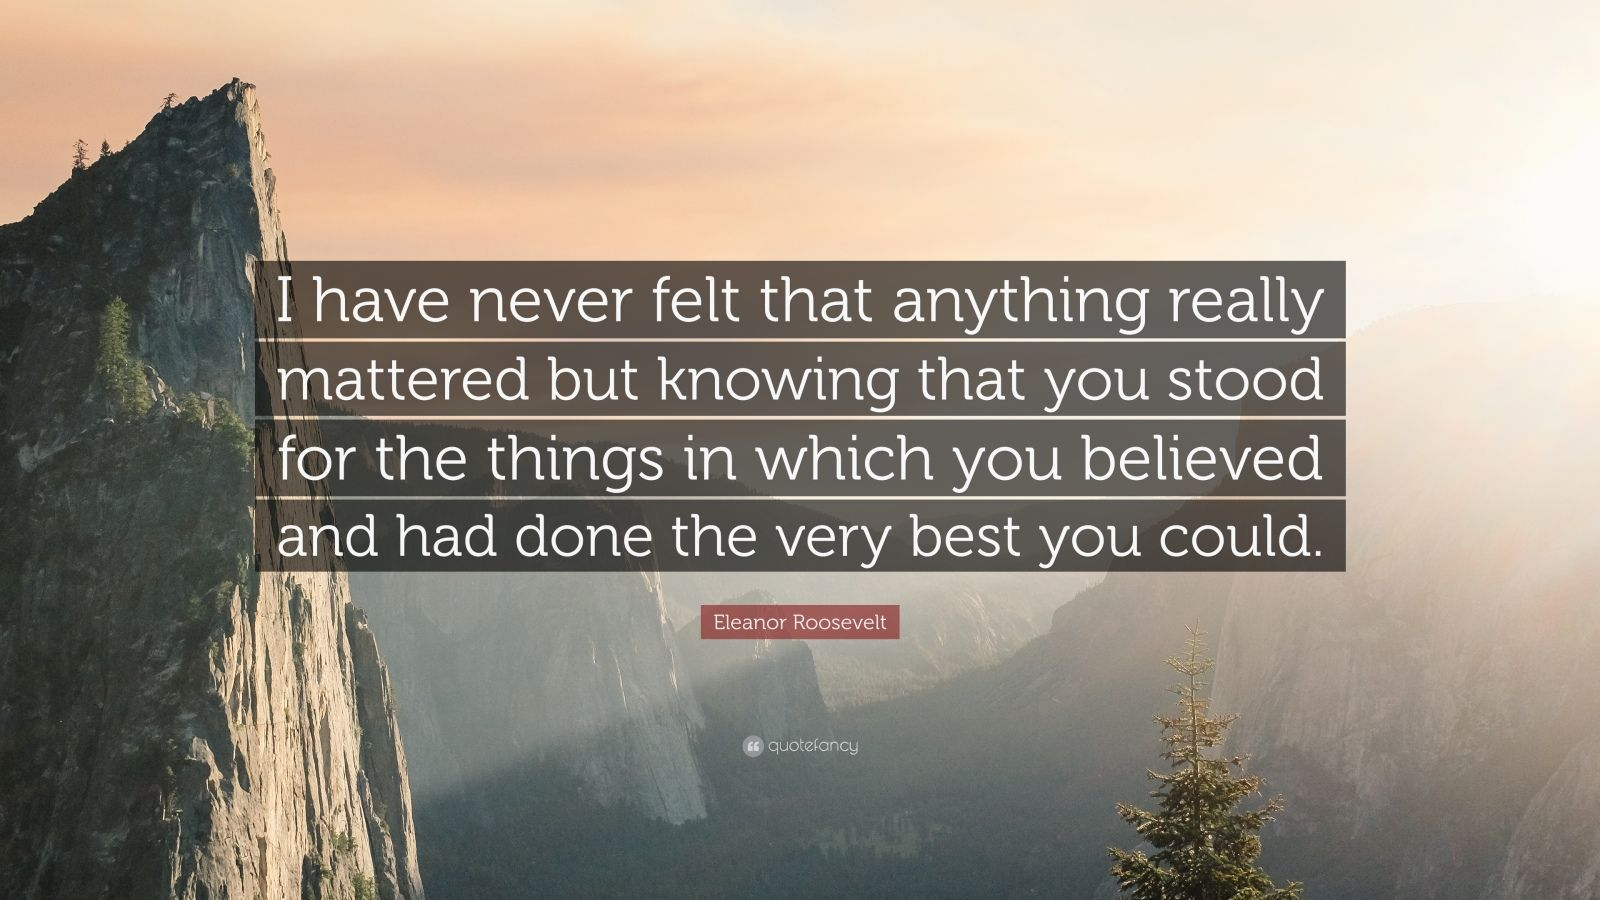 """Eleanor Roosevelt Quote: """"I have never felt that anything really mattered but knowing that you stood for the things in which you believed and had done the very best you could."""""""